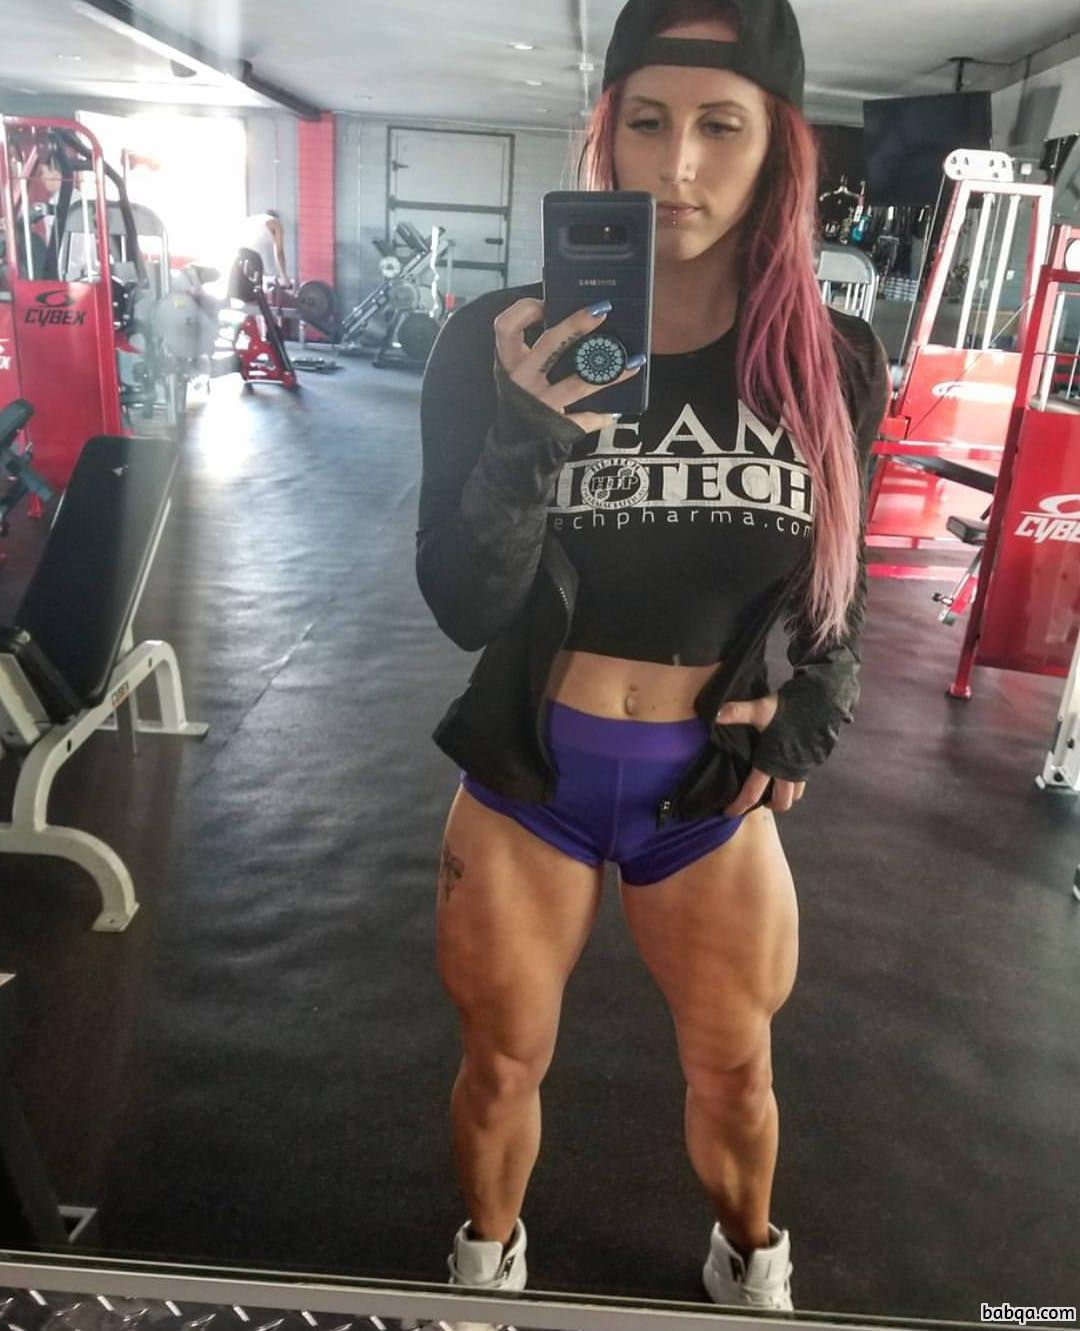 awesome chick with muscular body and muscle legs image from tumblr